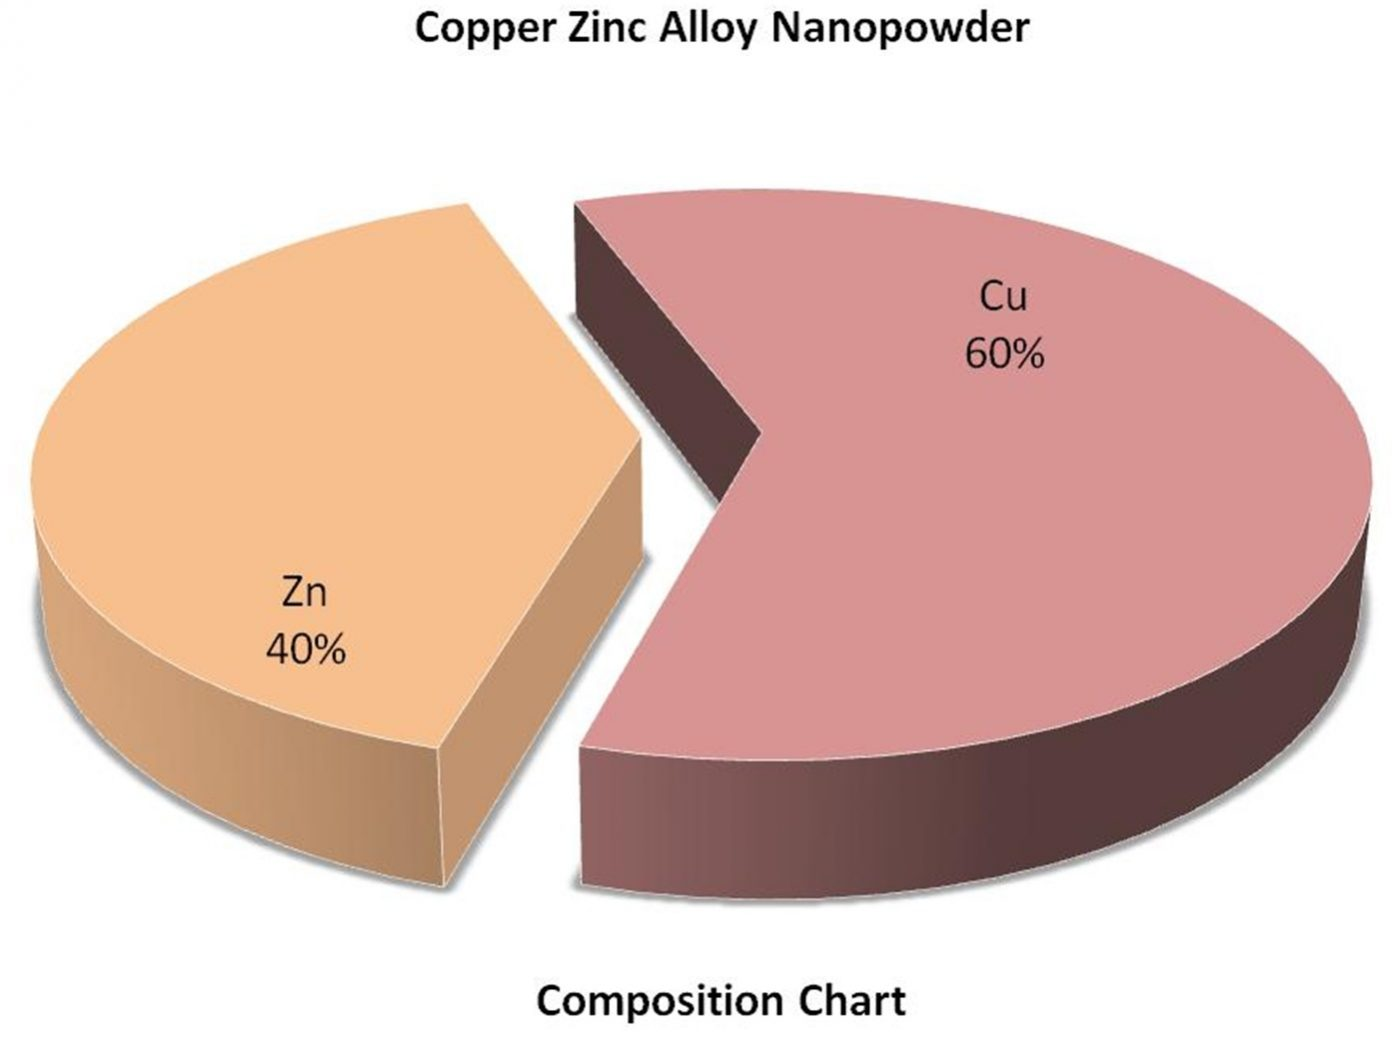 Composition Chart - Zinc Copper Alloy Nanopowder